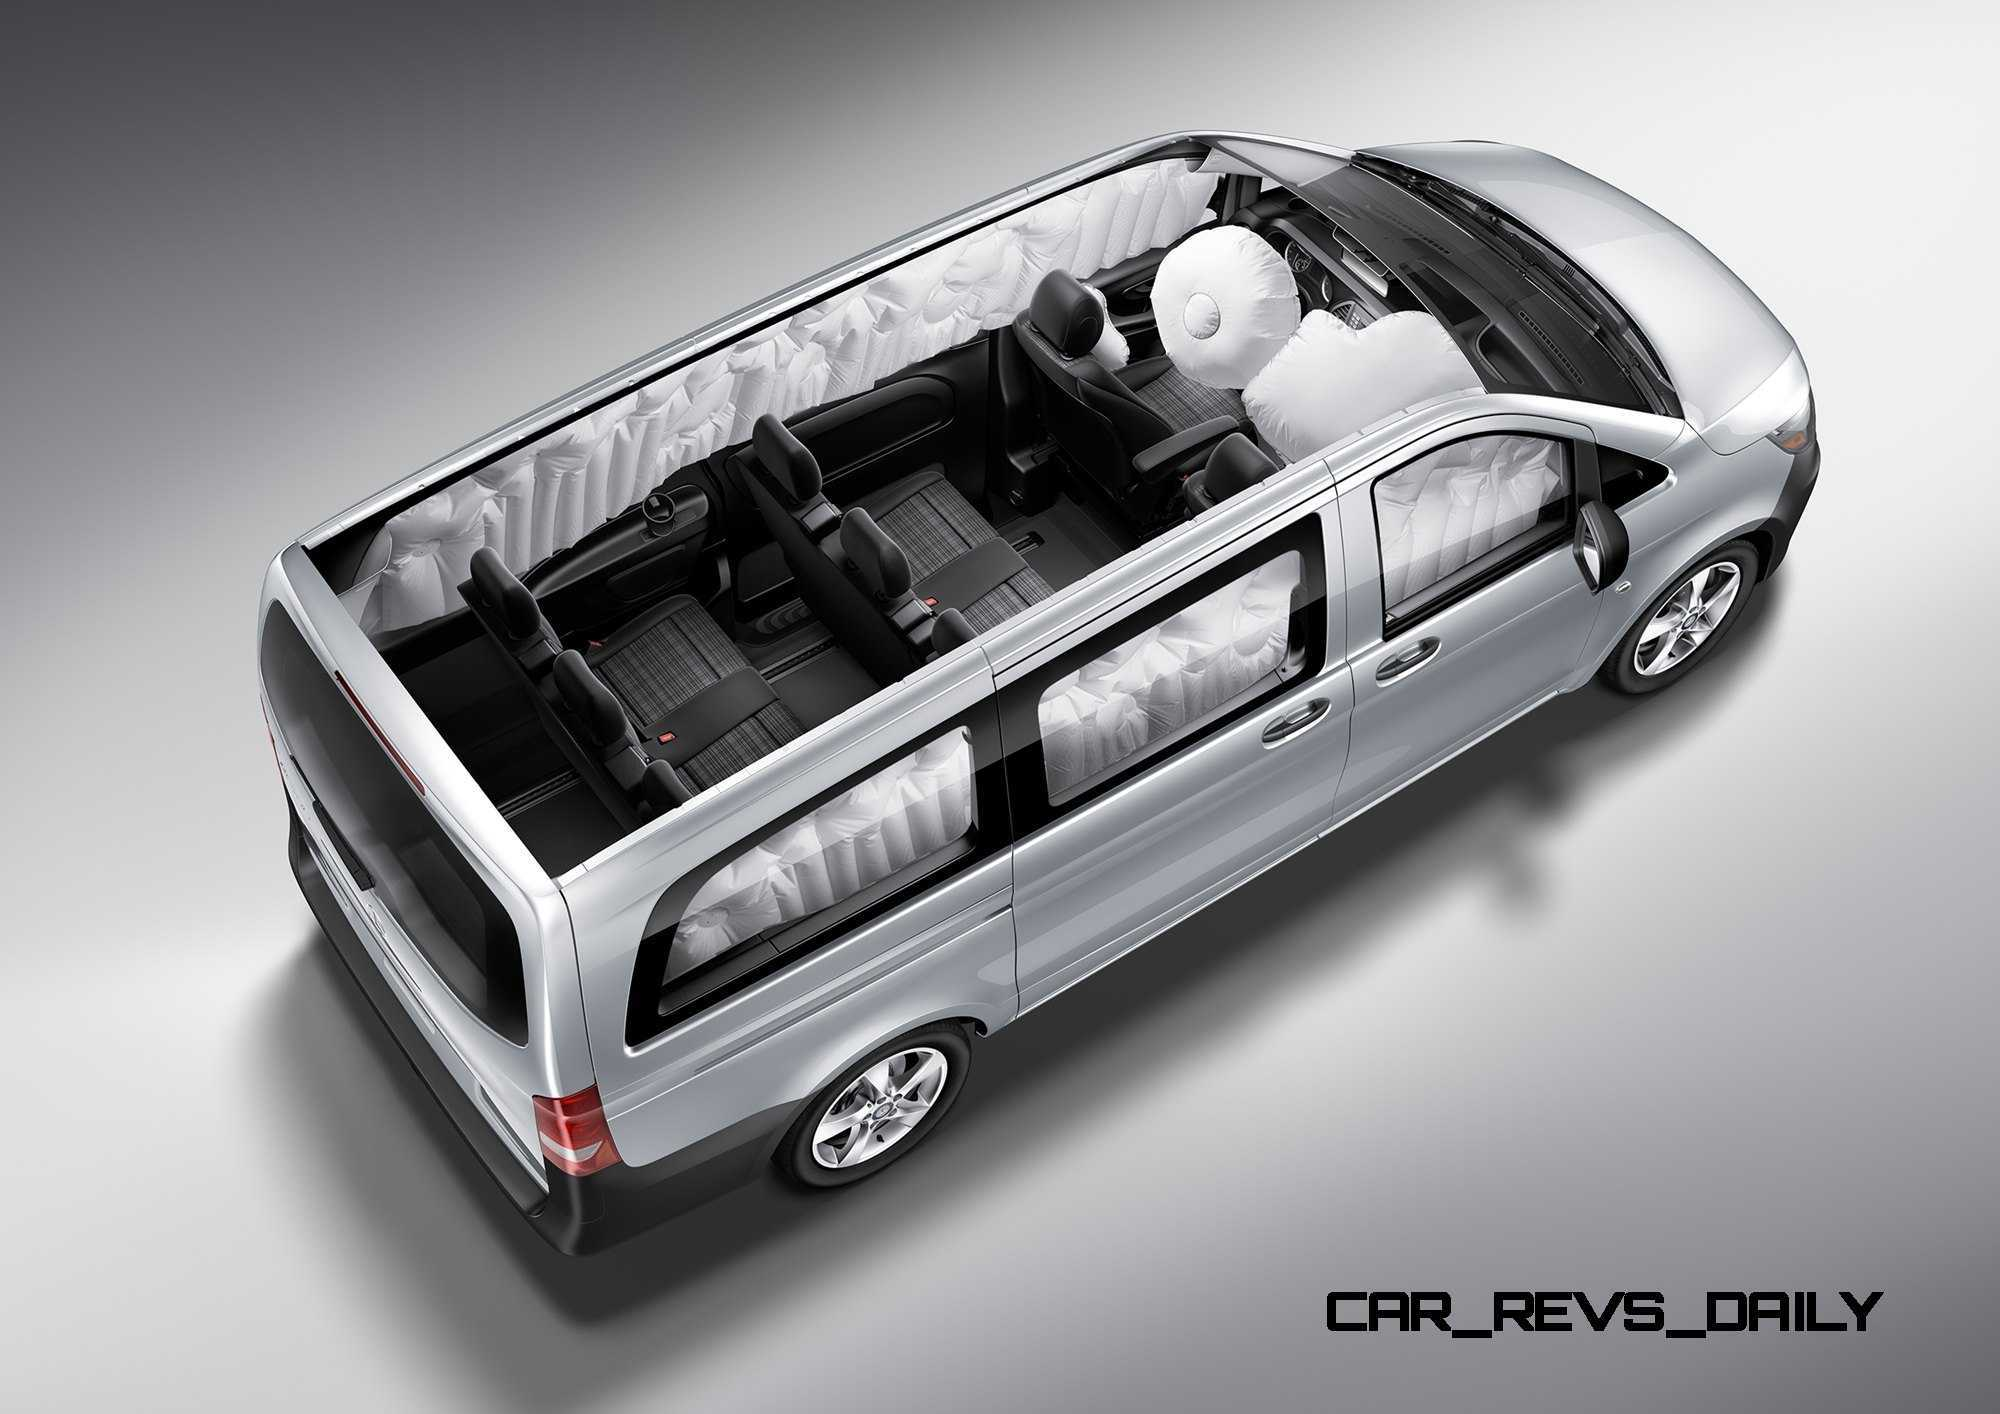 auto static size benchmark benz wants v tourer to vito for front mercedes mid its new debuts vans set minivan